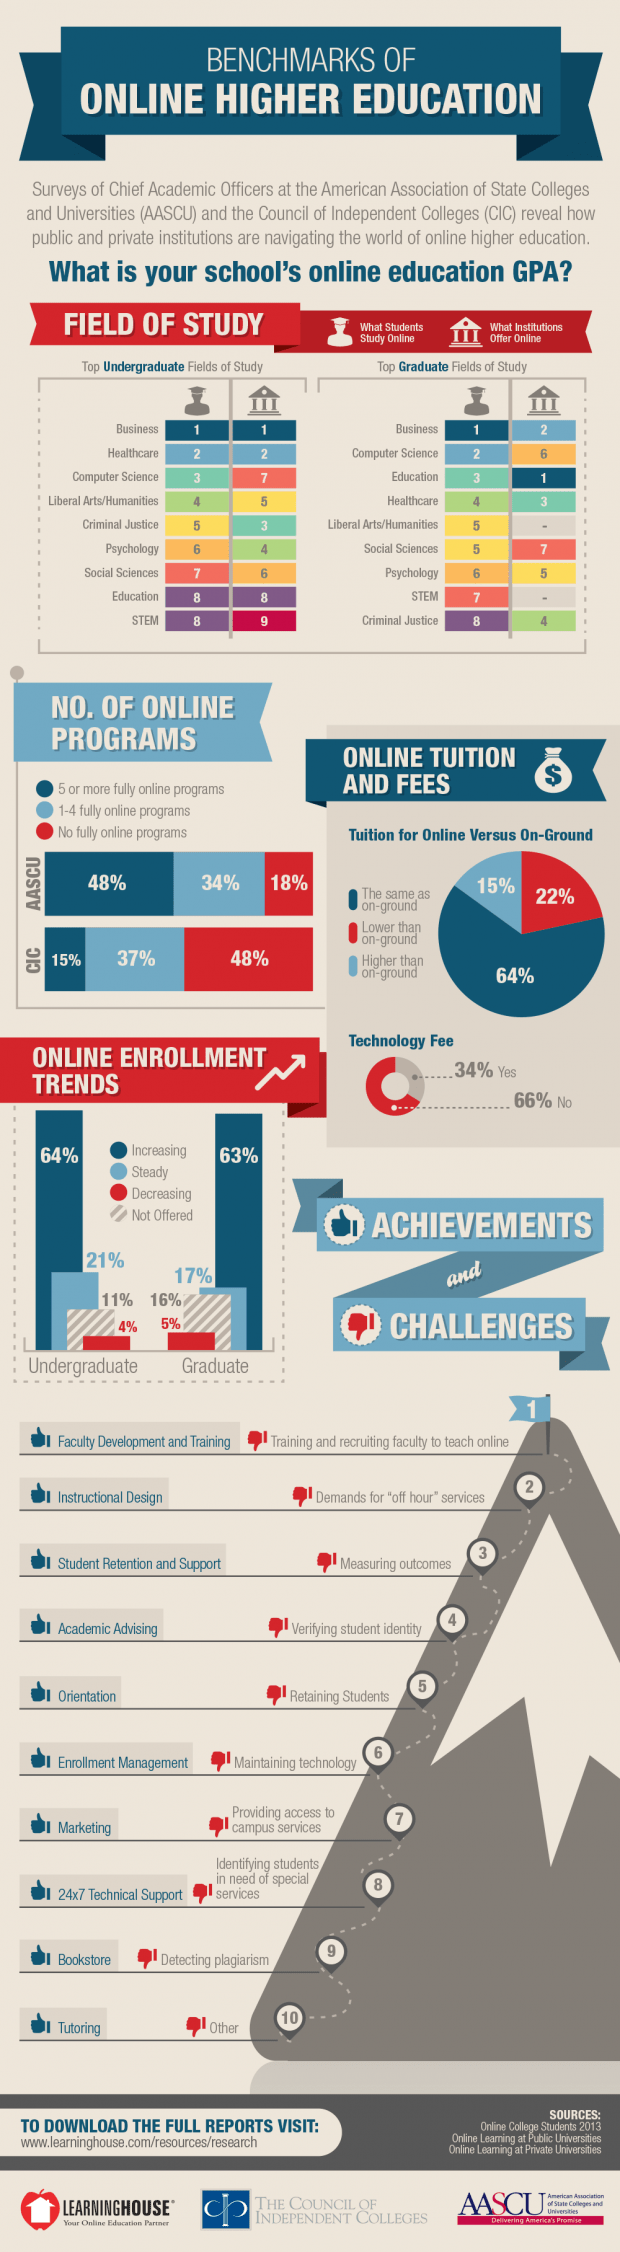 Benchmarks-of-Online-Higher-Education-Large-620x2252